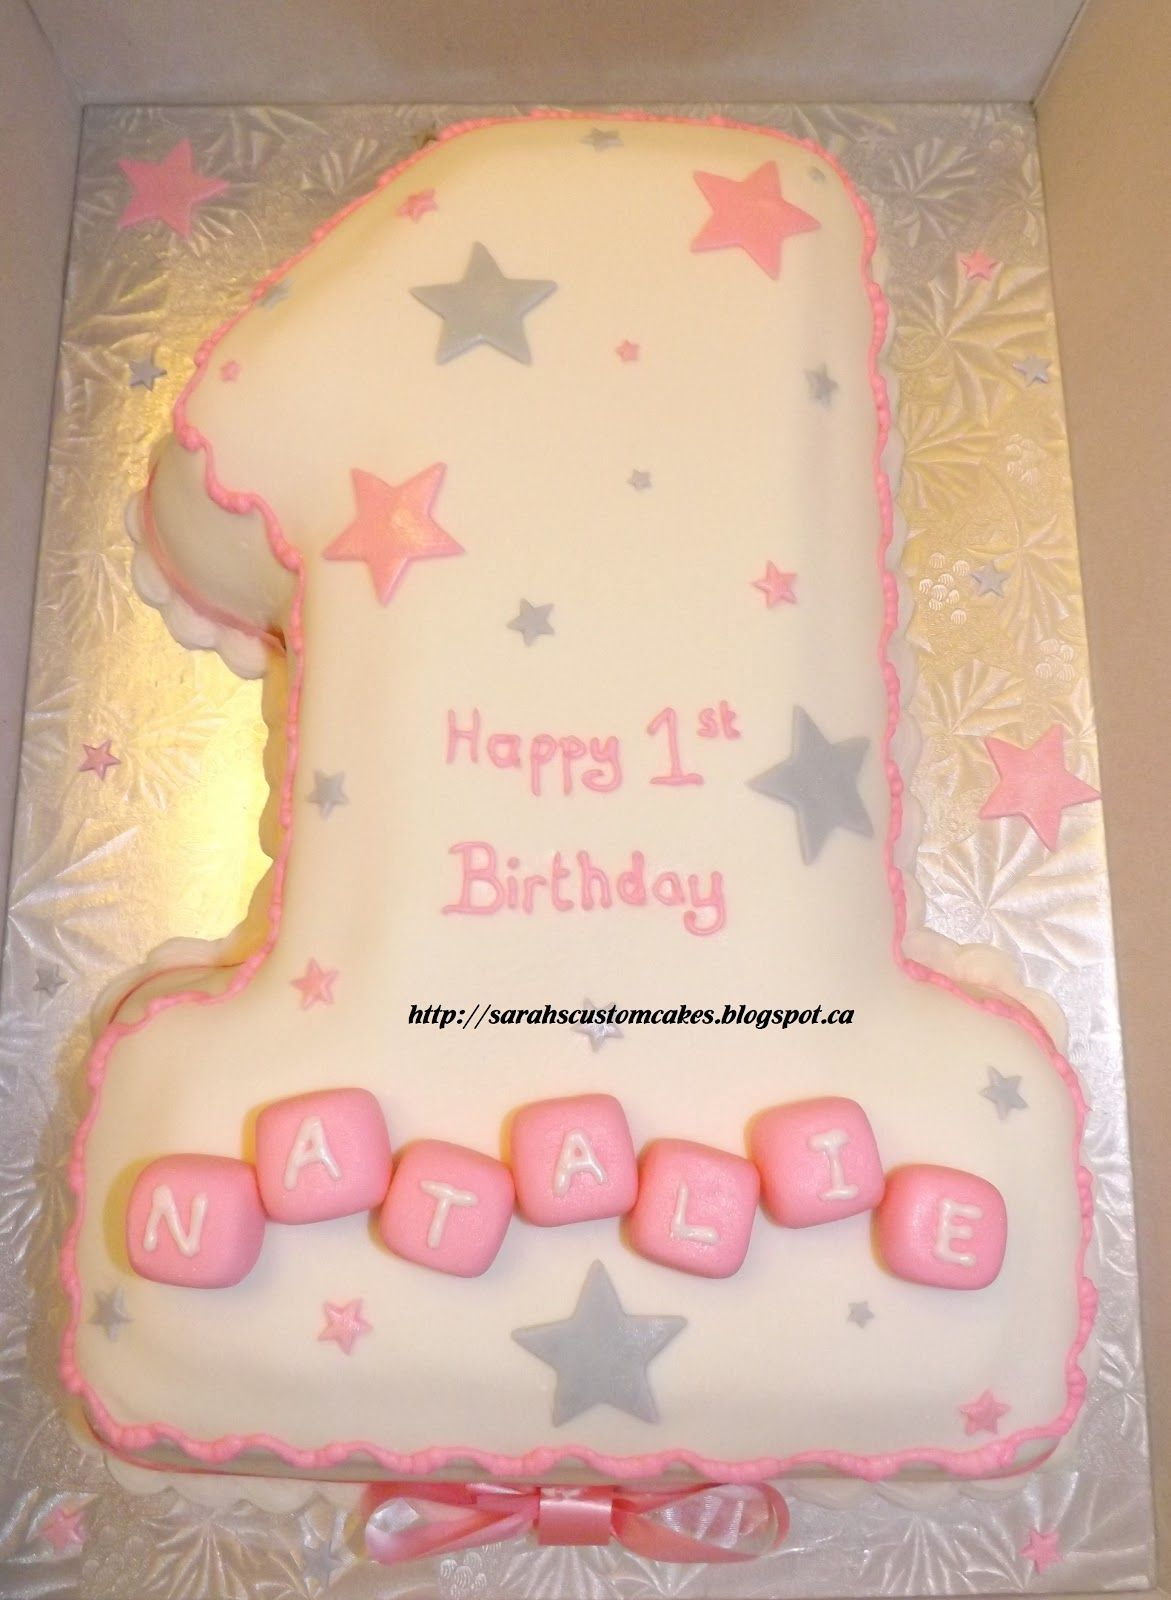 Outstanding 1St Birthday Cakes For Girls Cakes Barrie Innisfil No 1 Funny Birthday Cards Online Fluifree Goldxyz